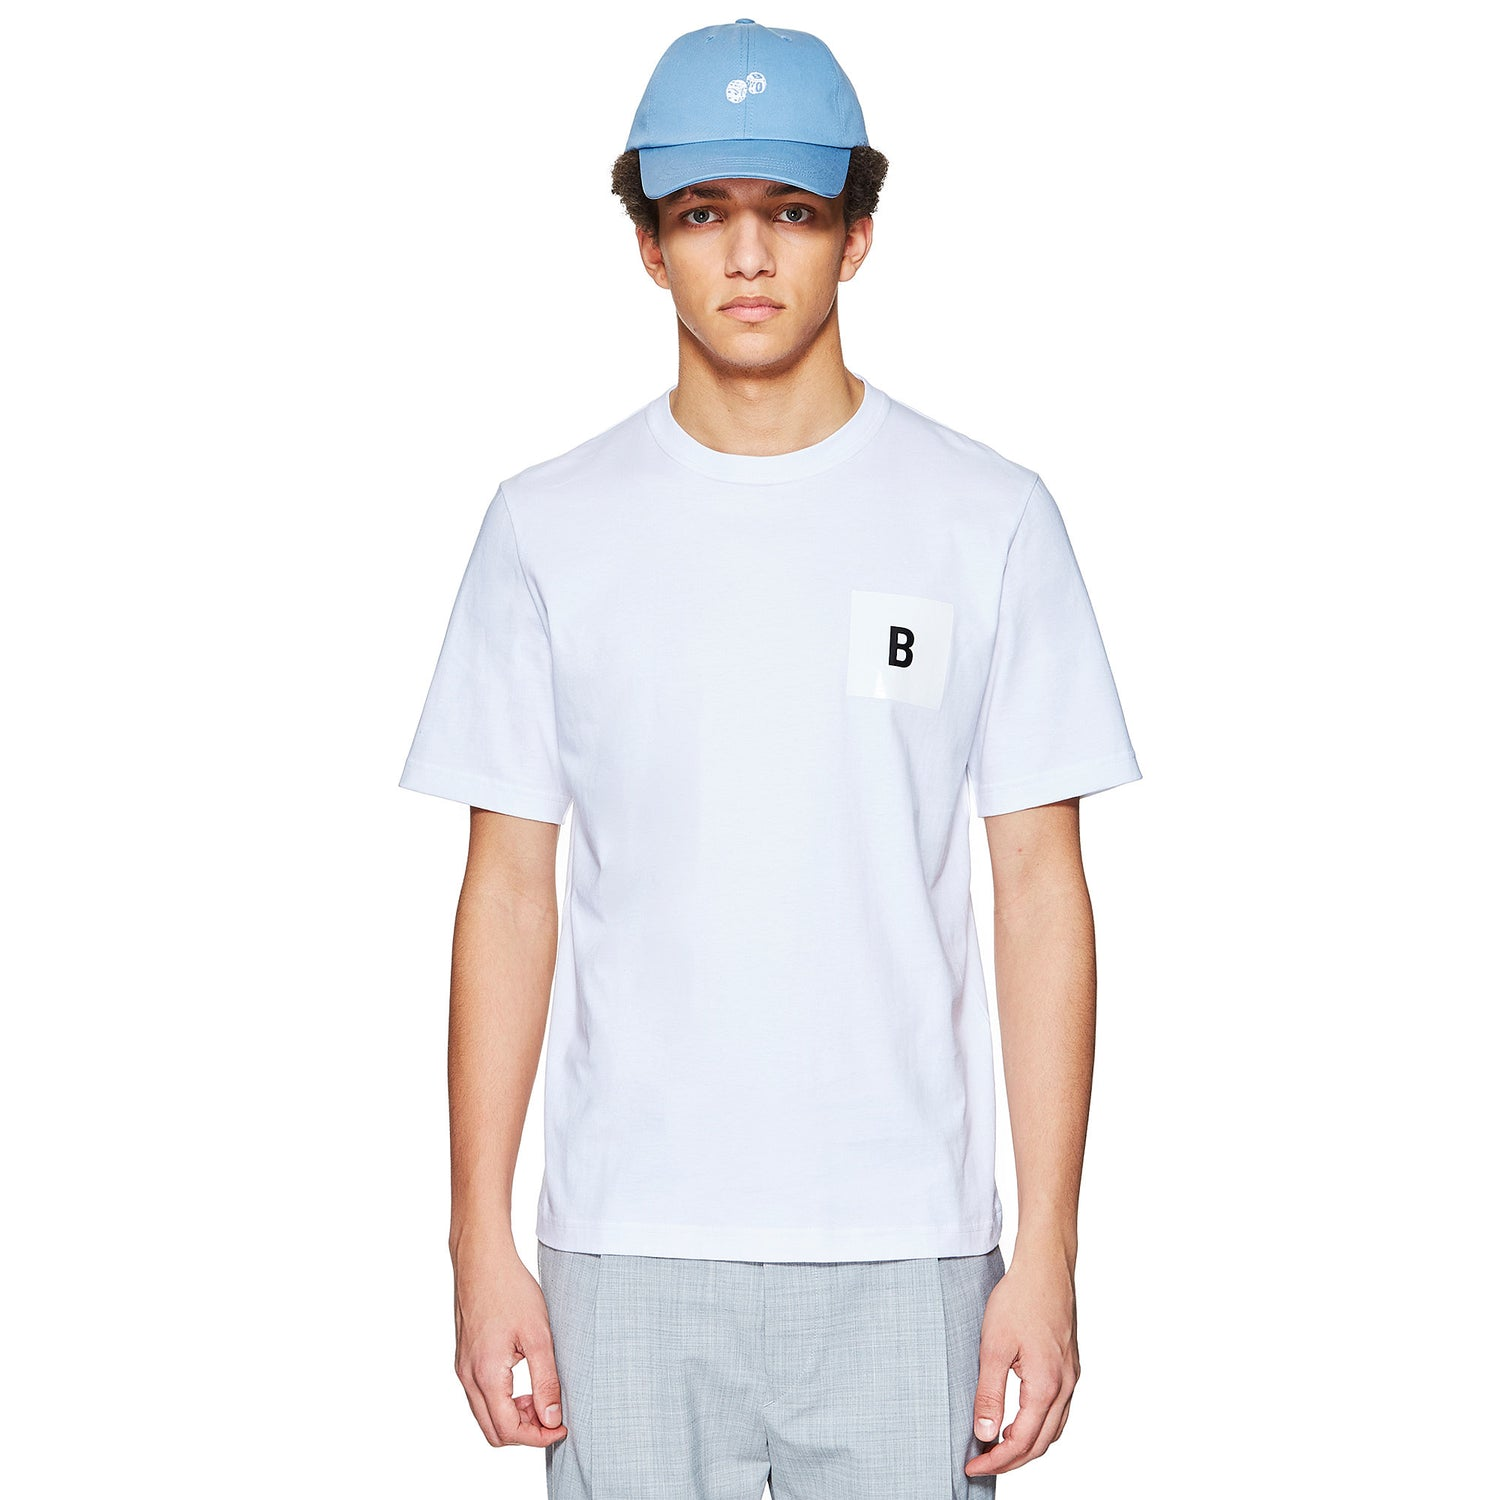 B LOGO WHITE T-SHIRT